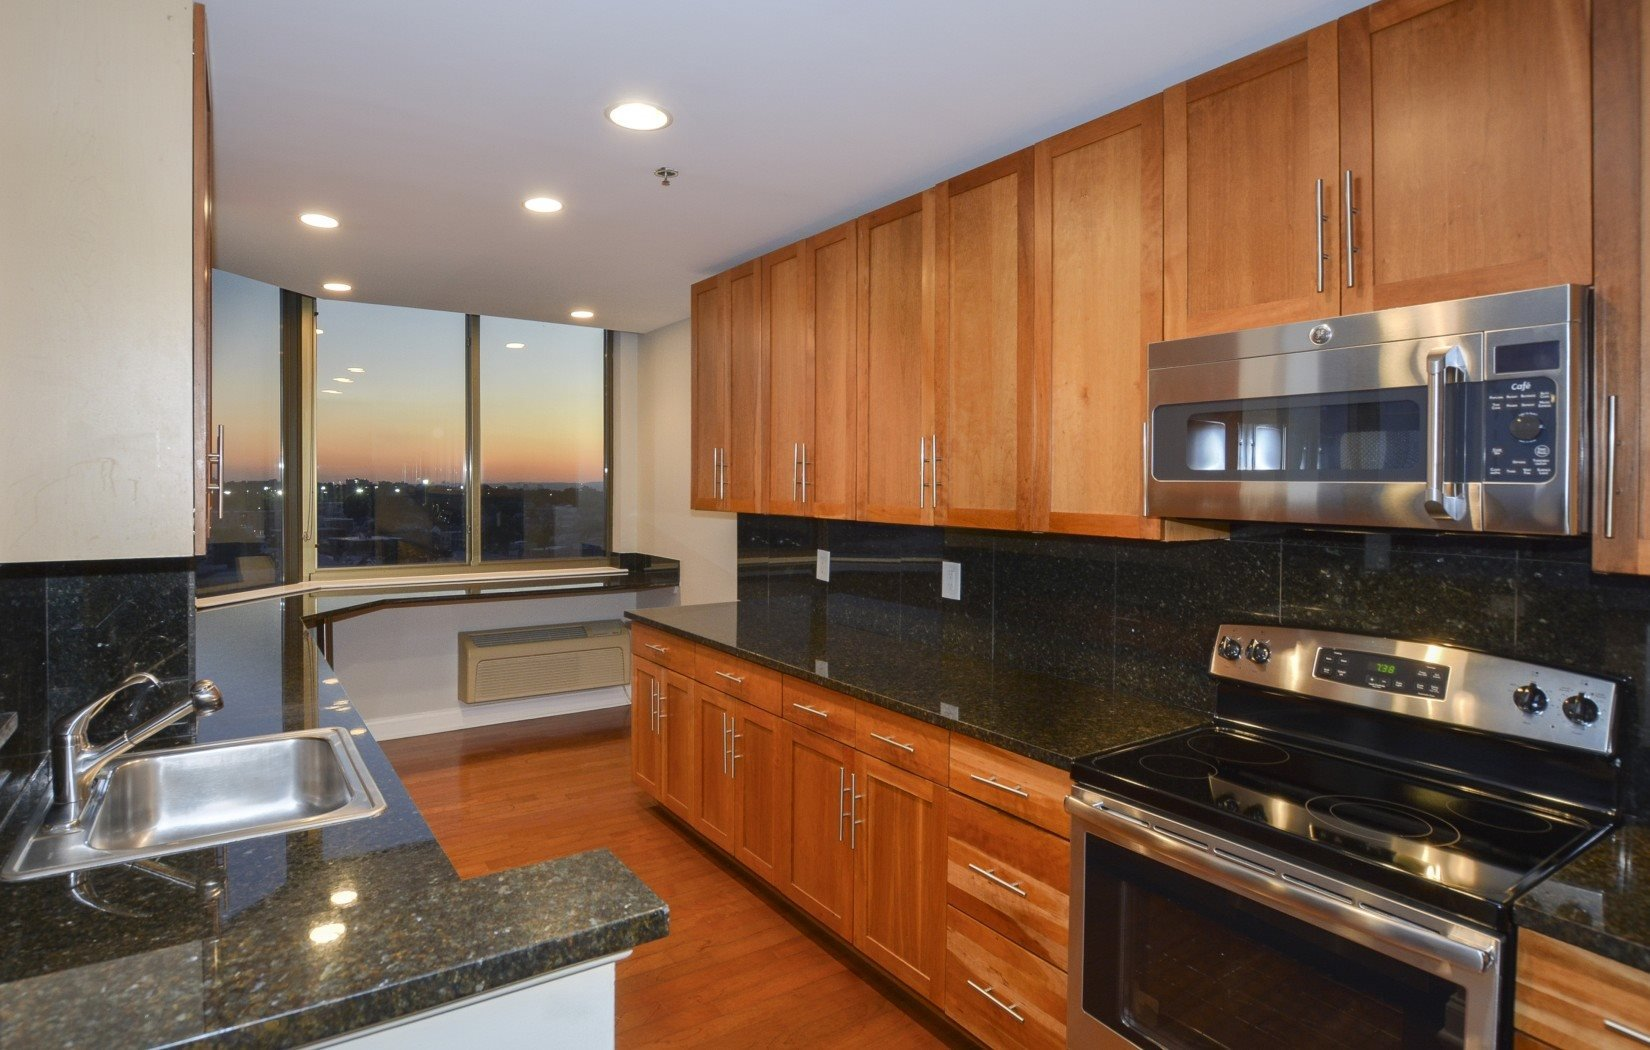 gourmet kitchen with stainless steel appliances | Riello Apartments in Edgewater, NJ